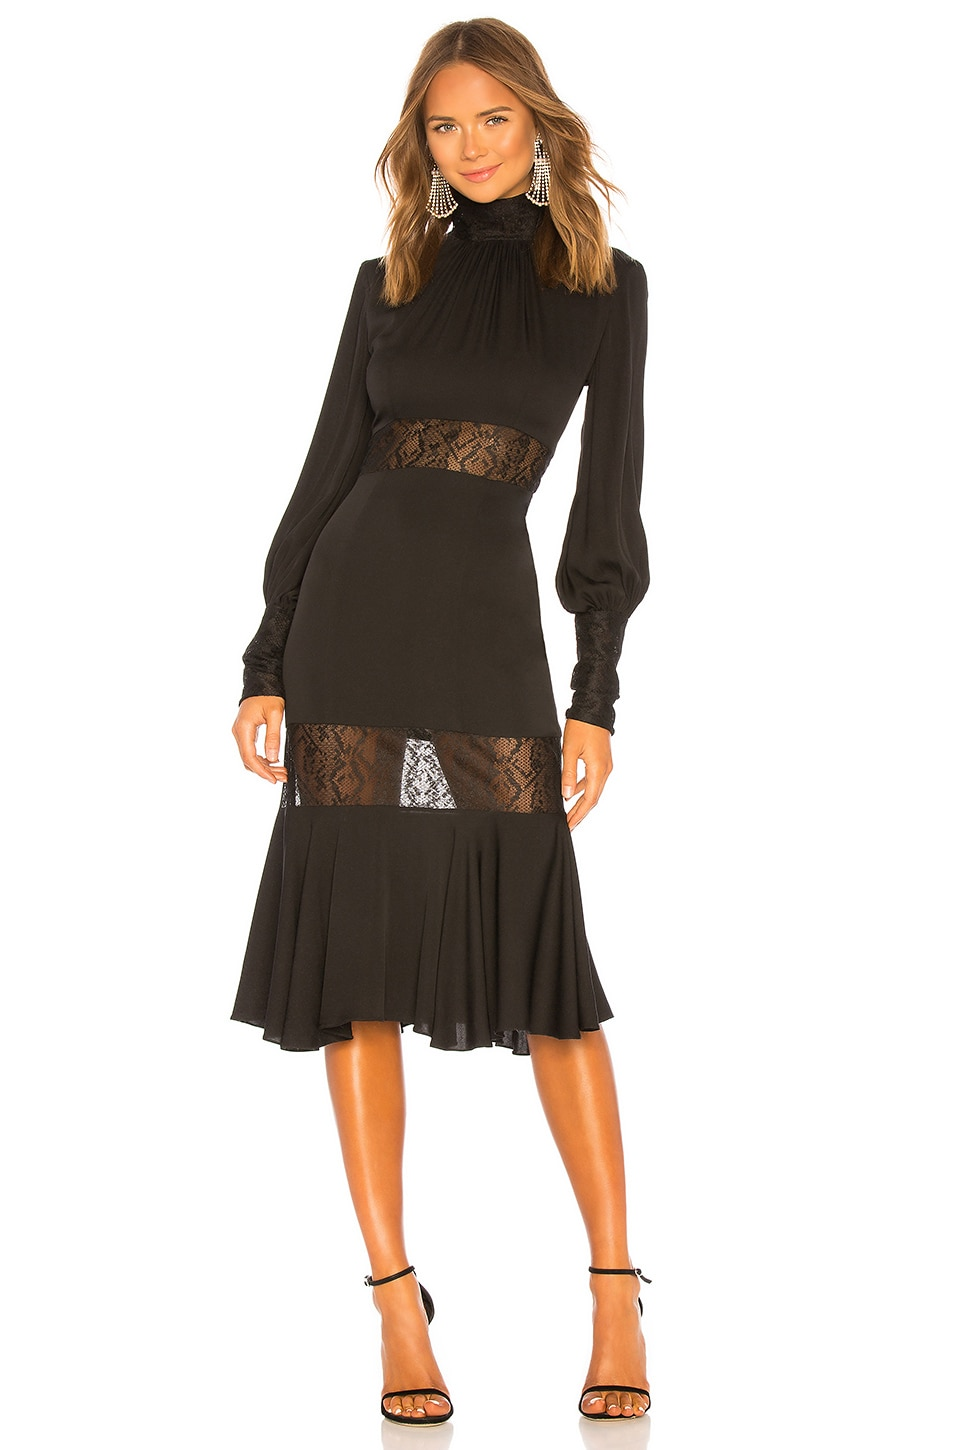 MILLY Arianna Dress in Black